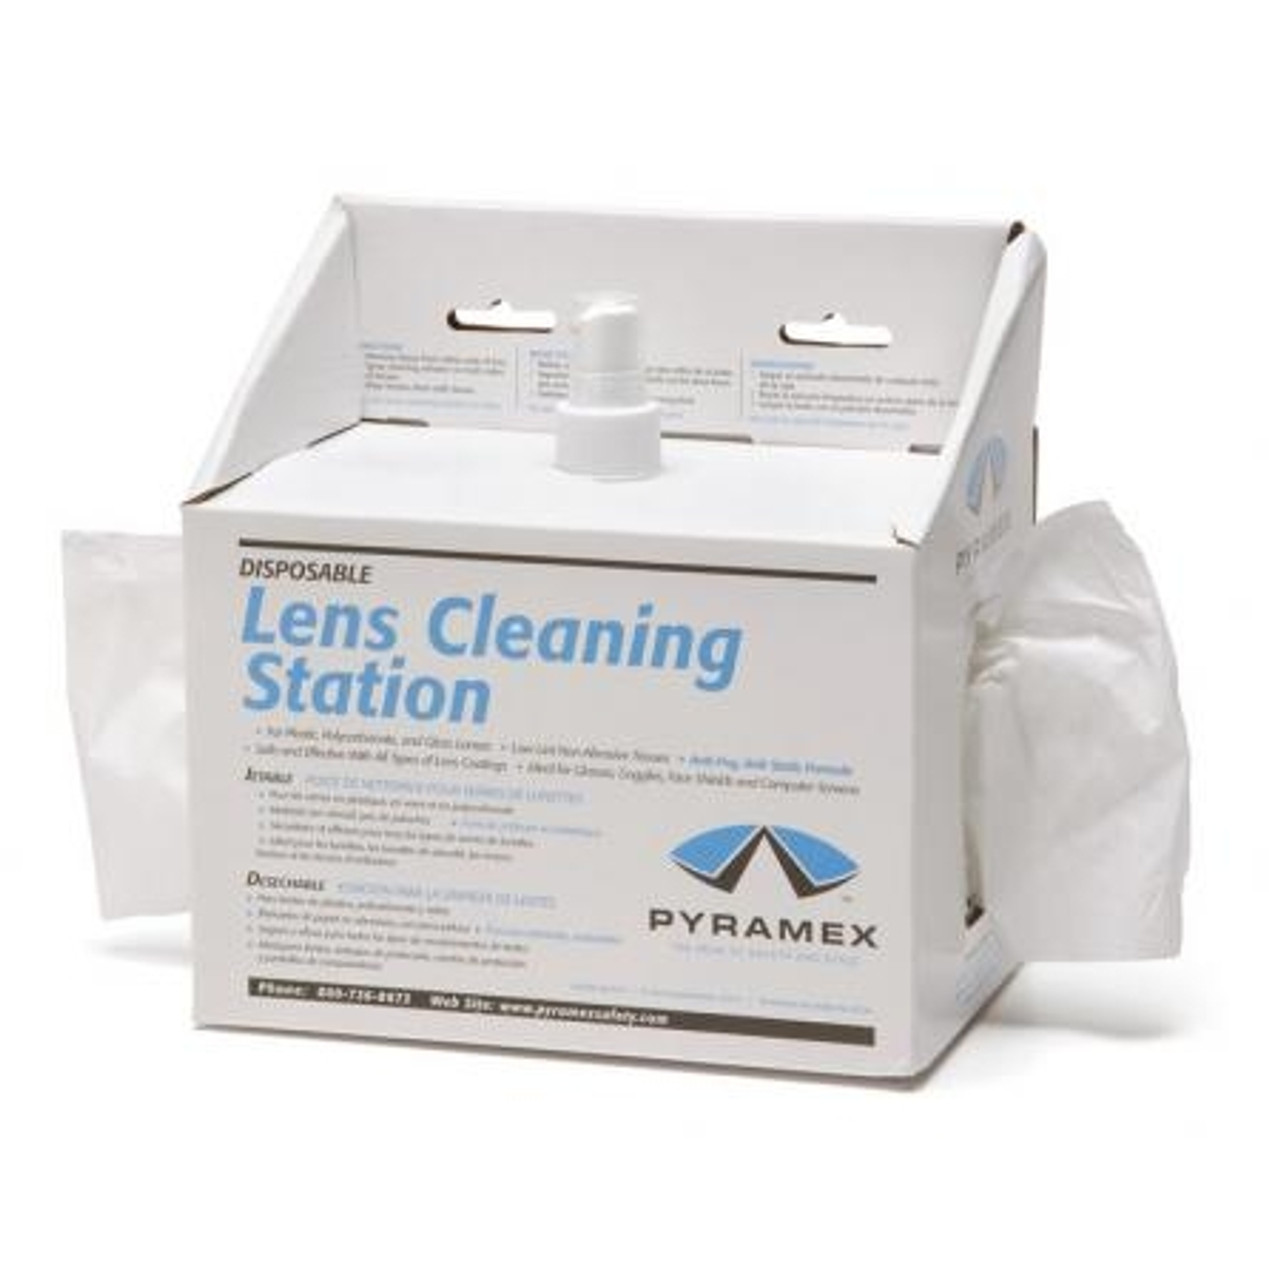 SAFETY GLASSES PYRAMEX LENS CLEANING CLOTH TOWELETTES 500 PIECES LCT100